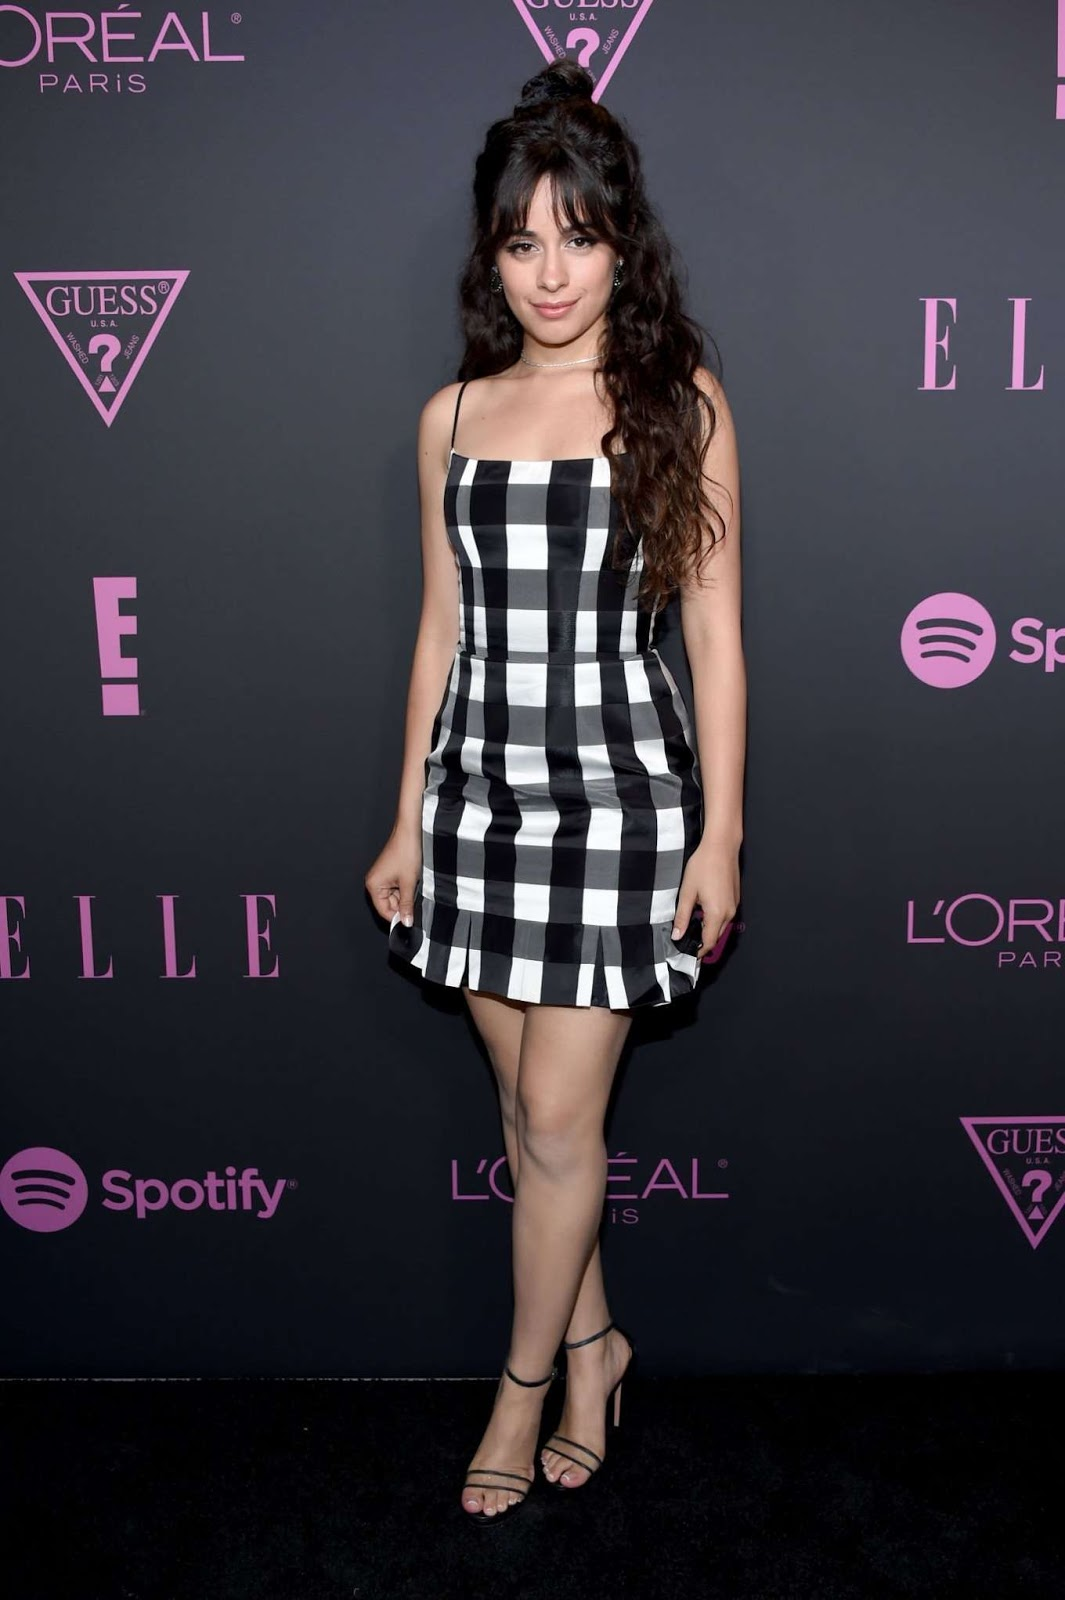 Camila Cabello wears chic plaid dress to the Elle Women in Music event